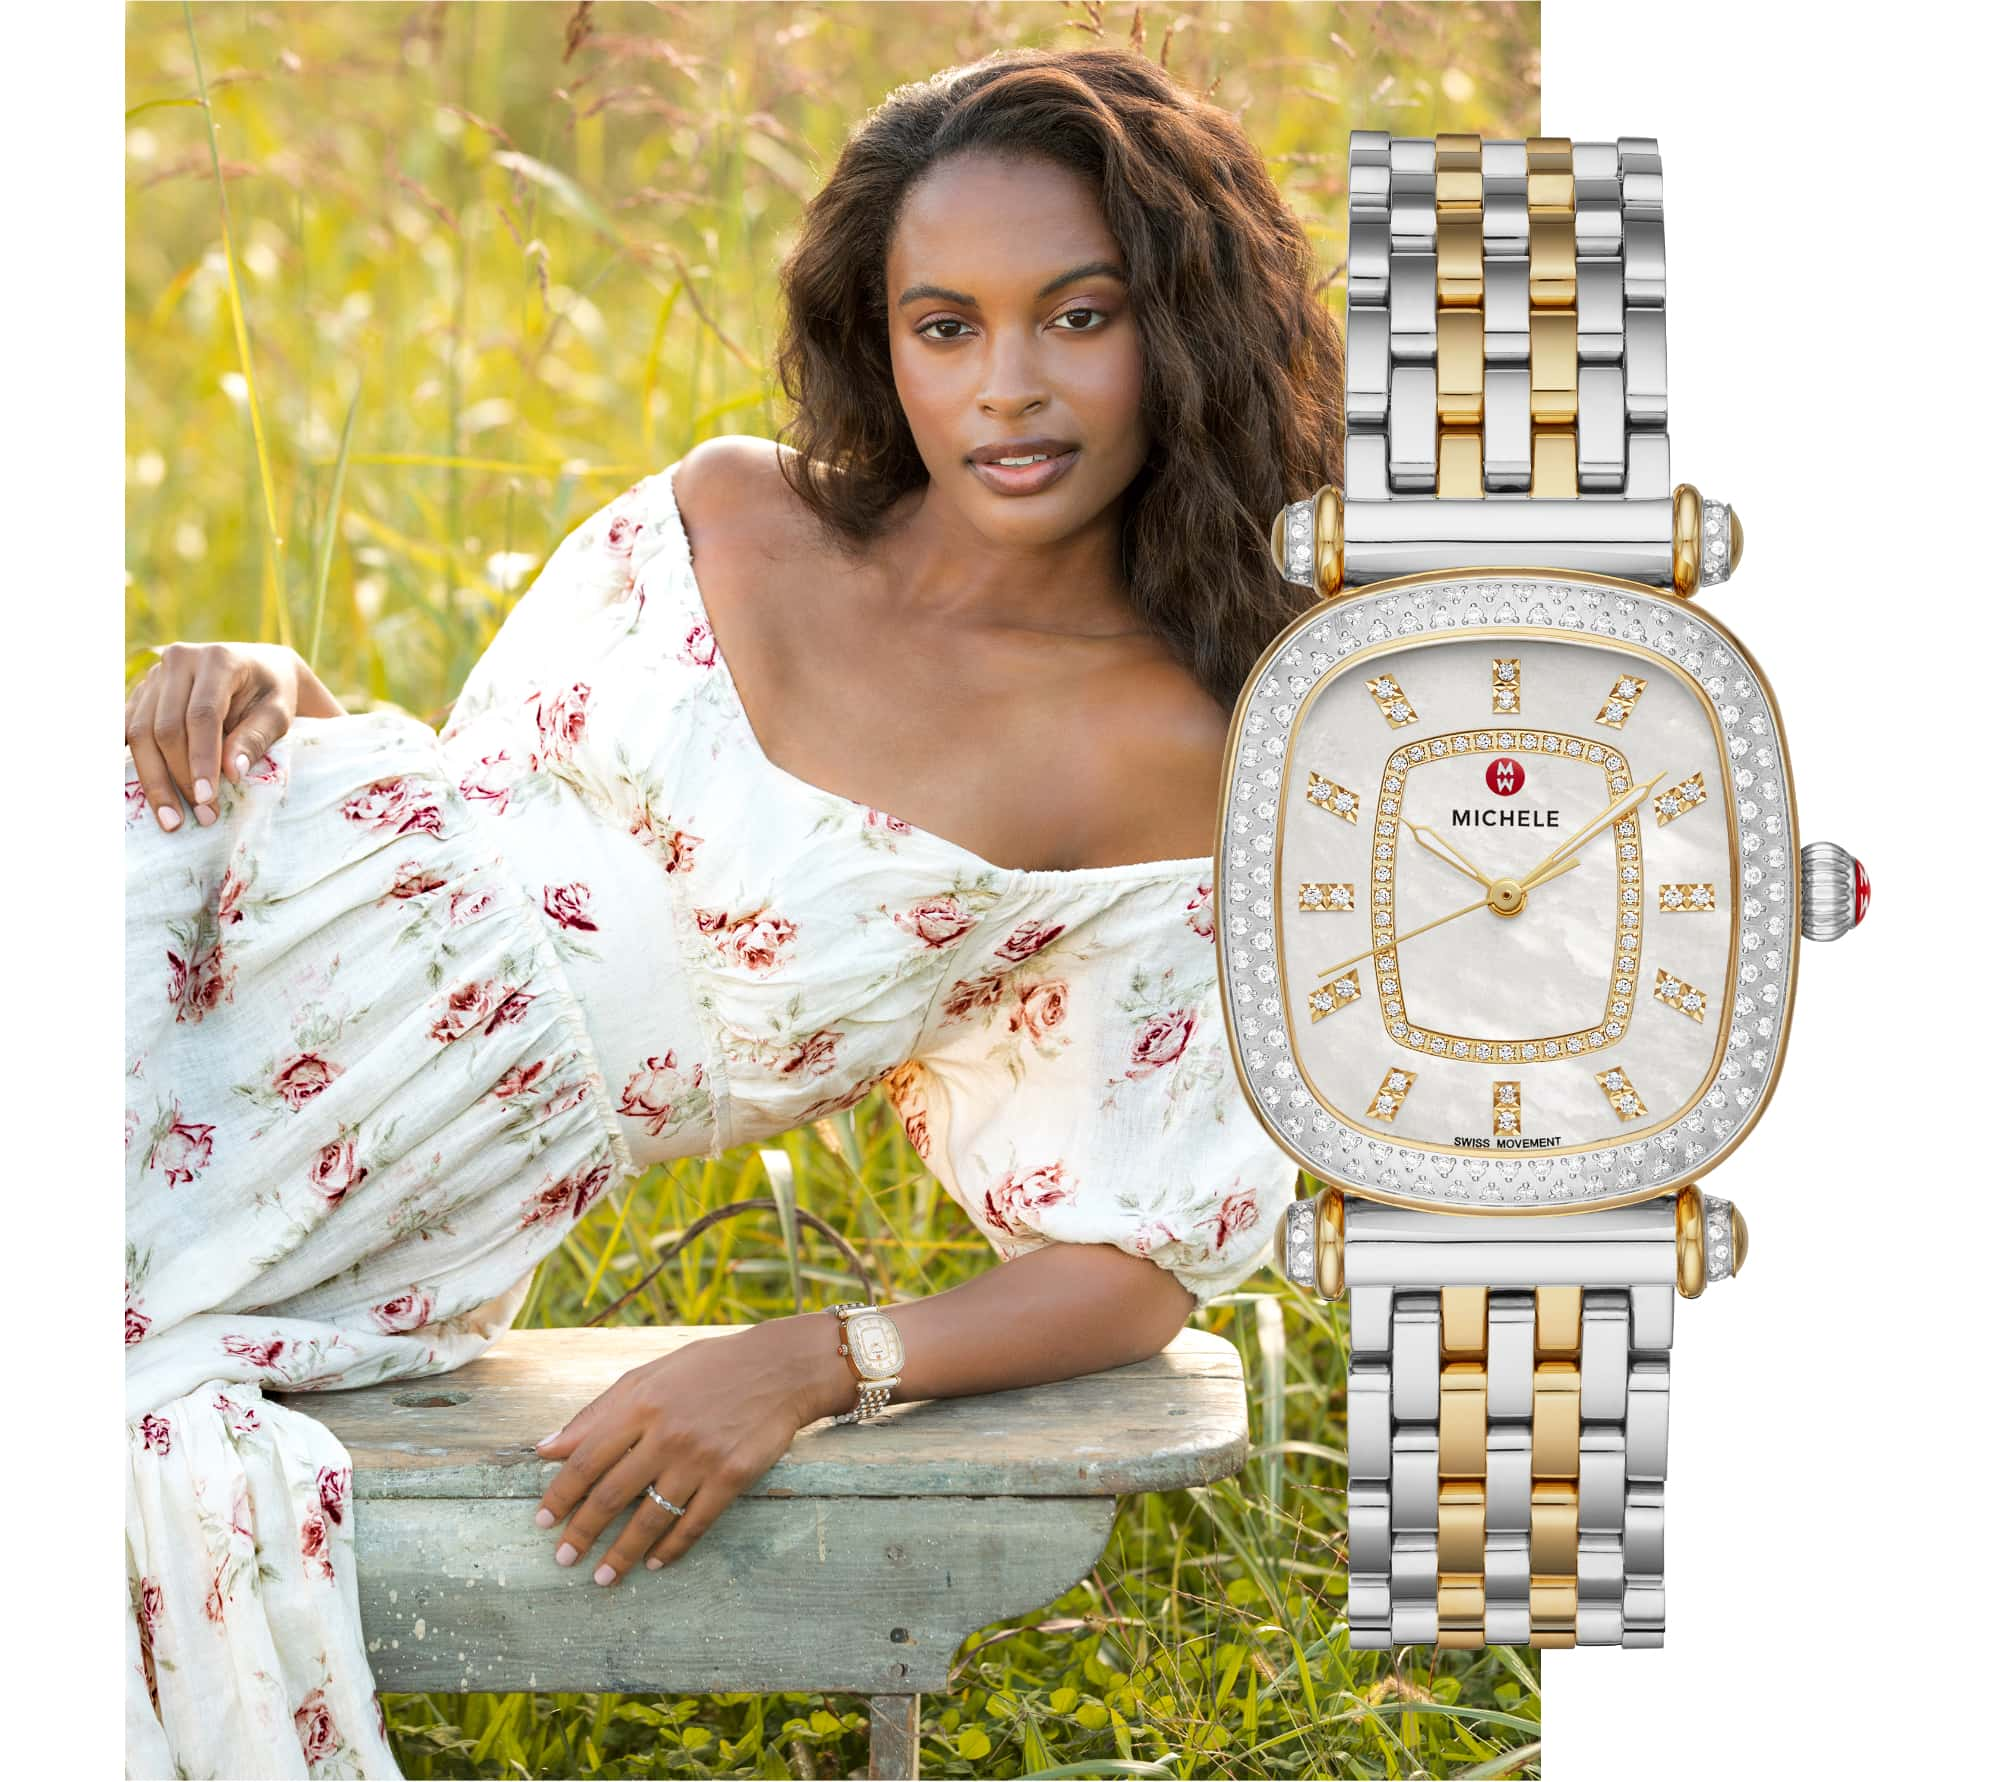 Stylish woman in field of flowers wearing two-tone stainless and 18K gold Caber Isle watch.